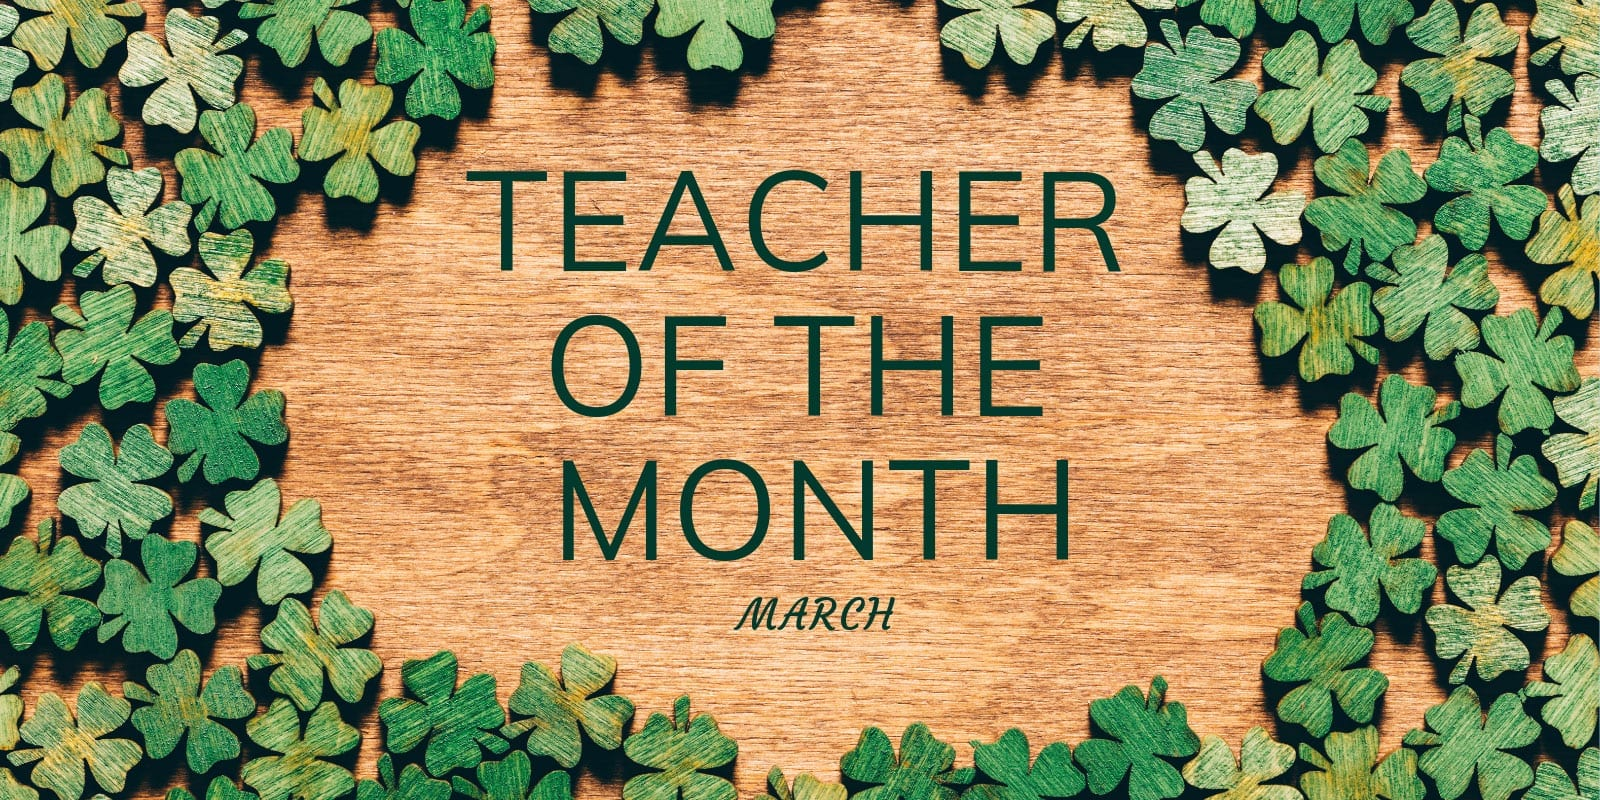 Little Sunshine's Playhouse Teacher of the Month March